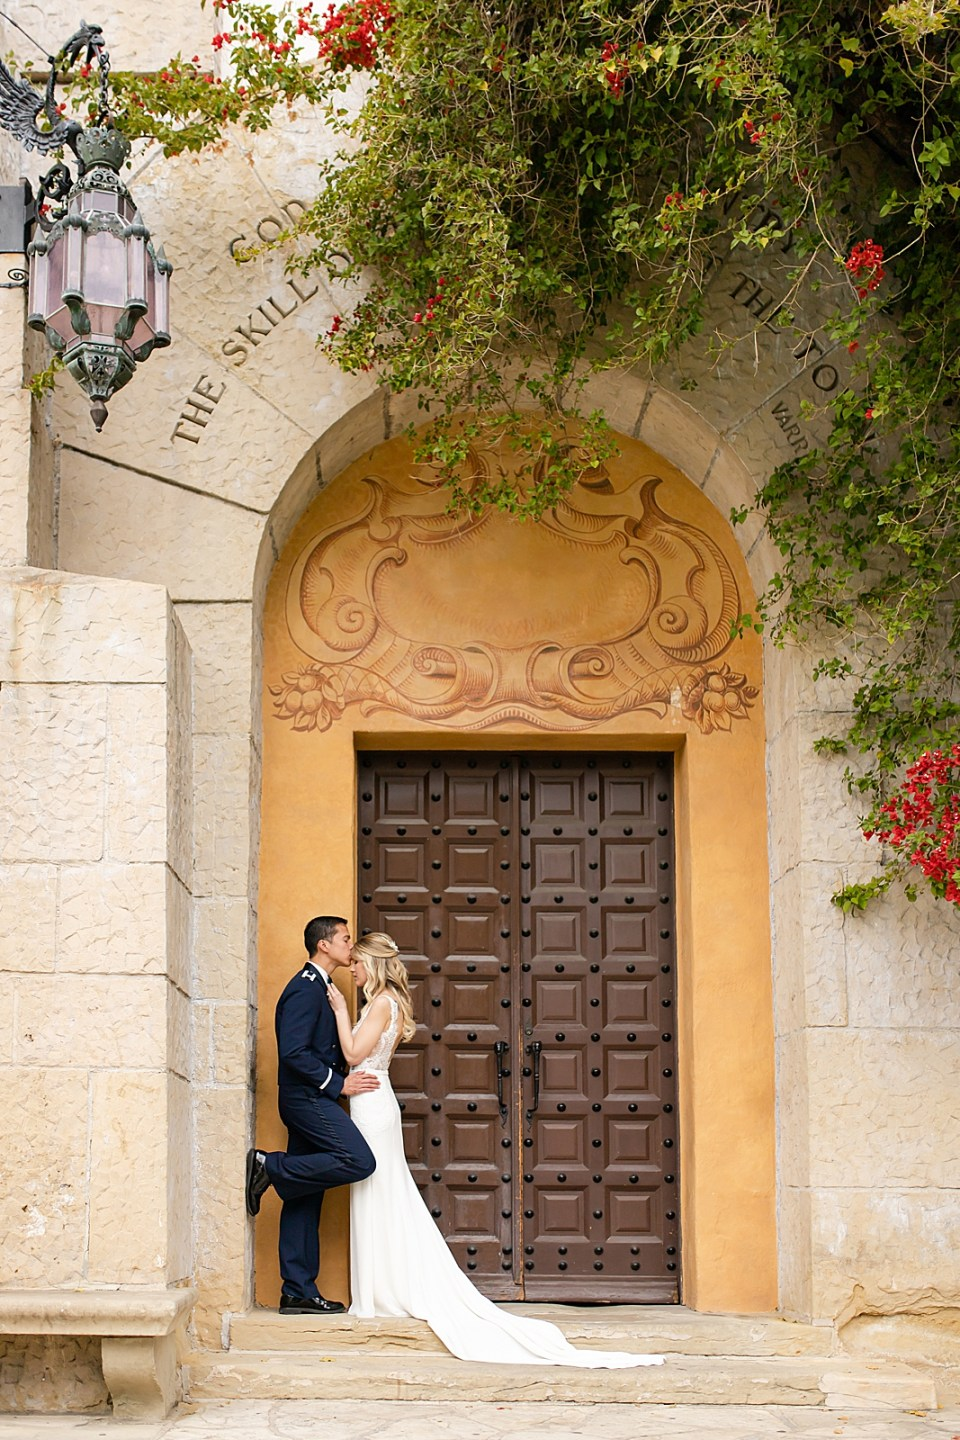 The groom leaning against a wall and pulling his wife to him and kissing her on the forehead.